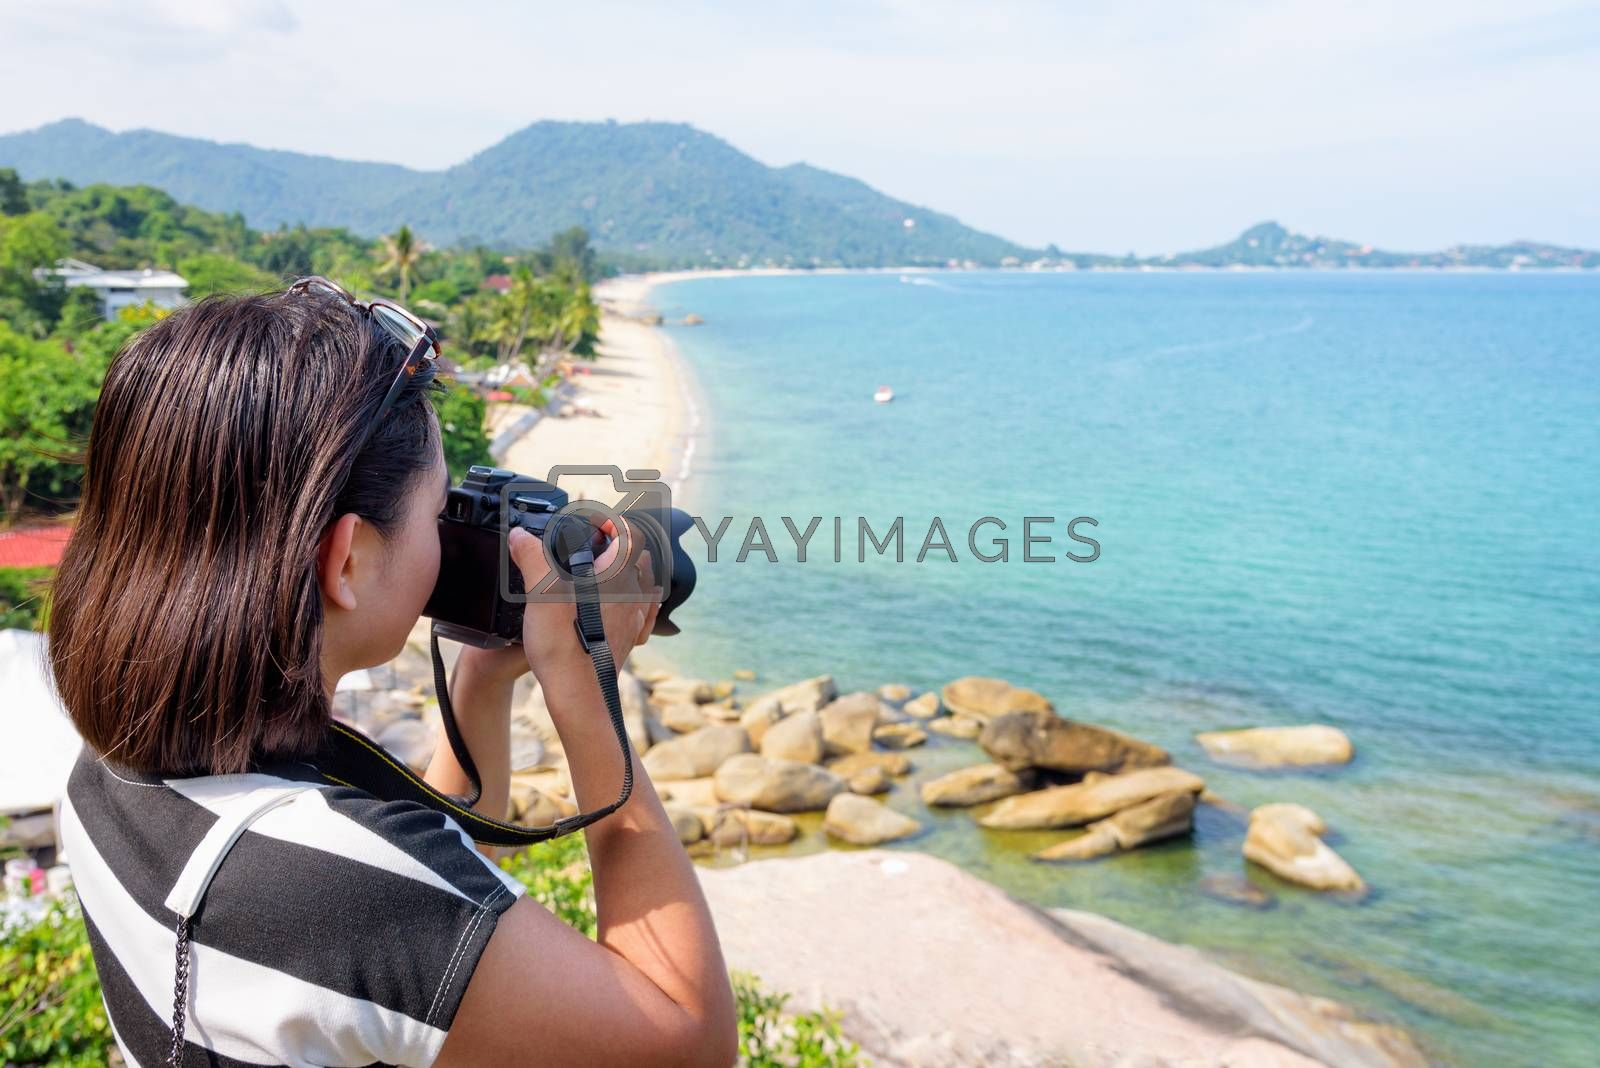 Young woman are using a DSLR camera to photography of the sea and beautiful nature landscape on Lamai beach viewpoint under the summer sky at Koh Samui island, Surat Thani, Thailand